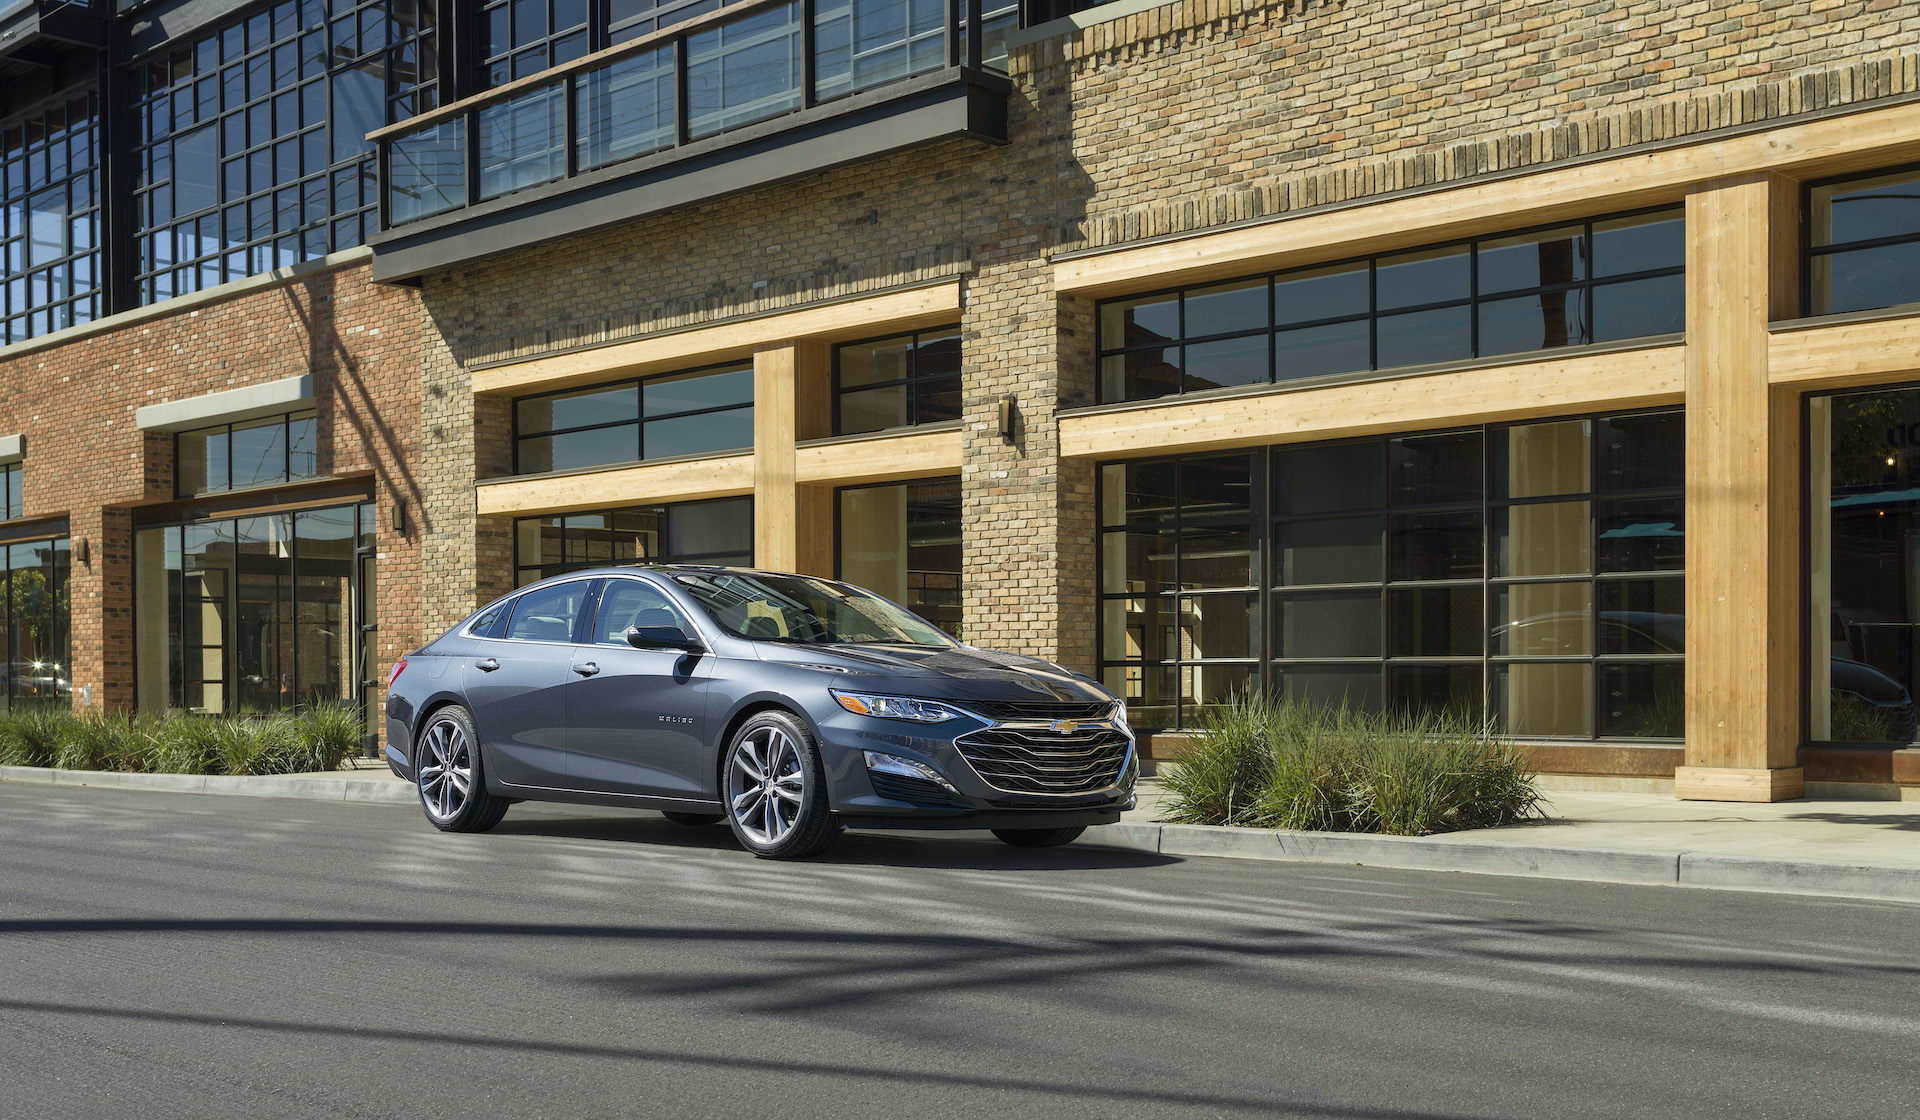 Chevy Malibu 2020 Review.2020 Chevrolet Malibu Chevy Review Ratings Specs Prices